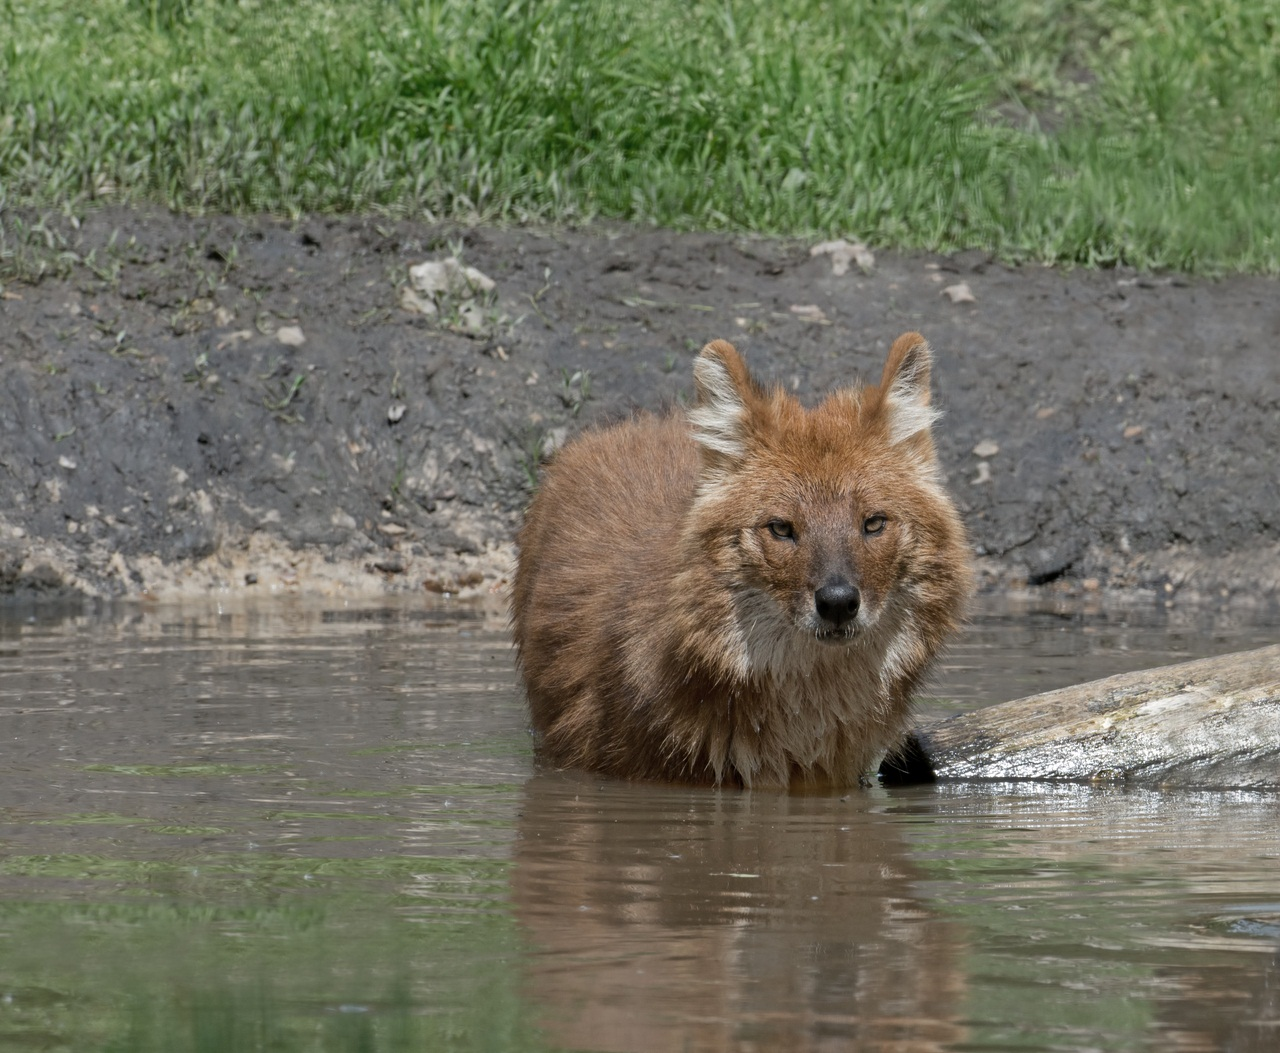 DHOLE OR INDIAN WILD DOG, Cuon alpinus, STANDS IN  A POOL OF WATER.